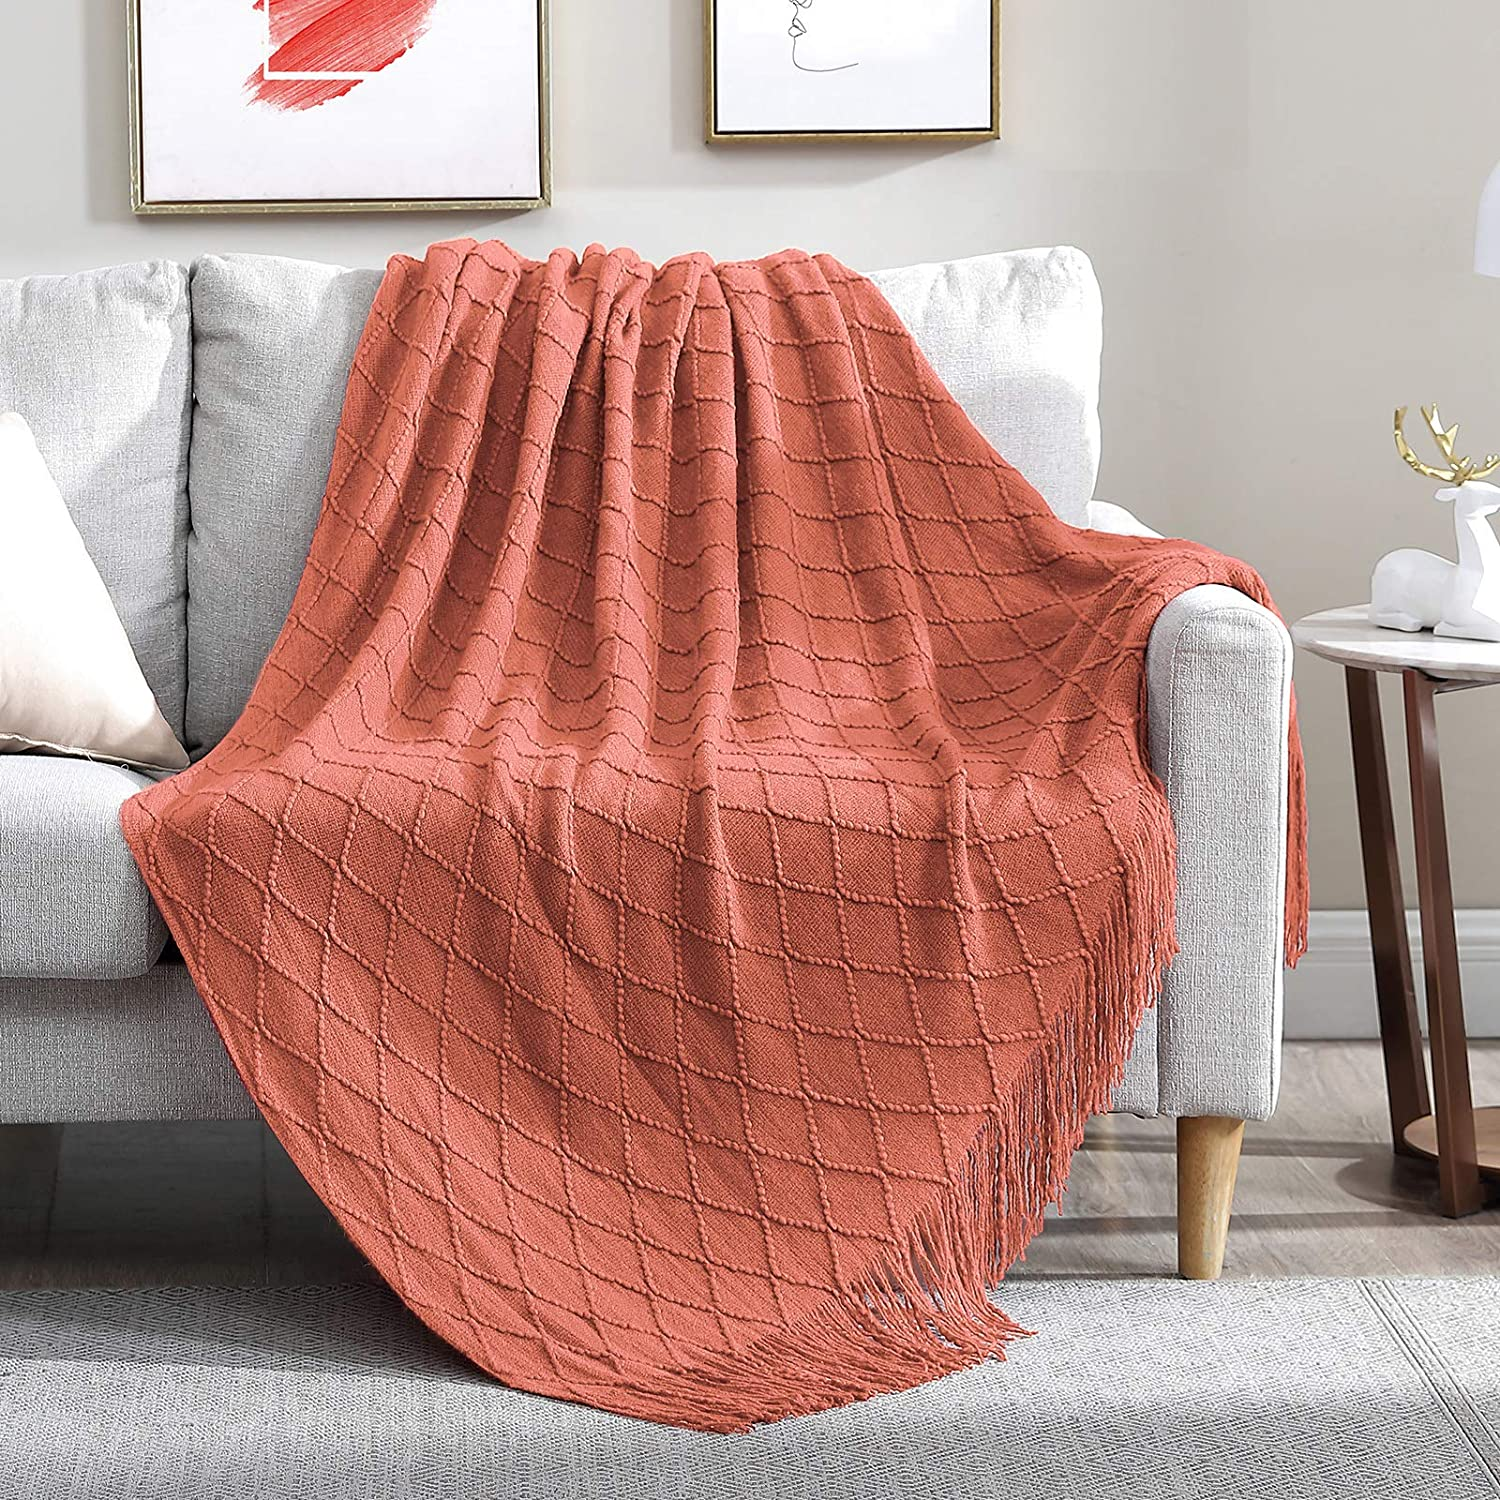 Walensee Throw Blanket for Couch, 50 x 60 Coral, Acrylic Knit Woven Summer Blanket, Lightweight Decorative Soft Nap Throw with Tassel for Chair Bed Sofa Travel Picnic, Suitable for All Seasons